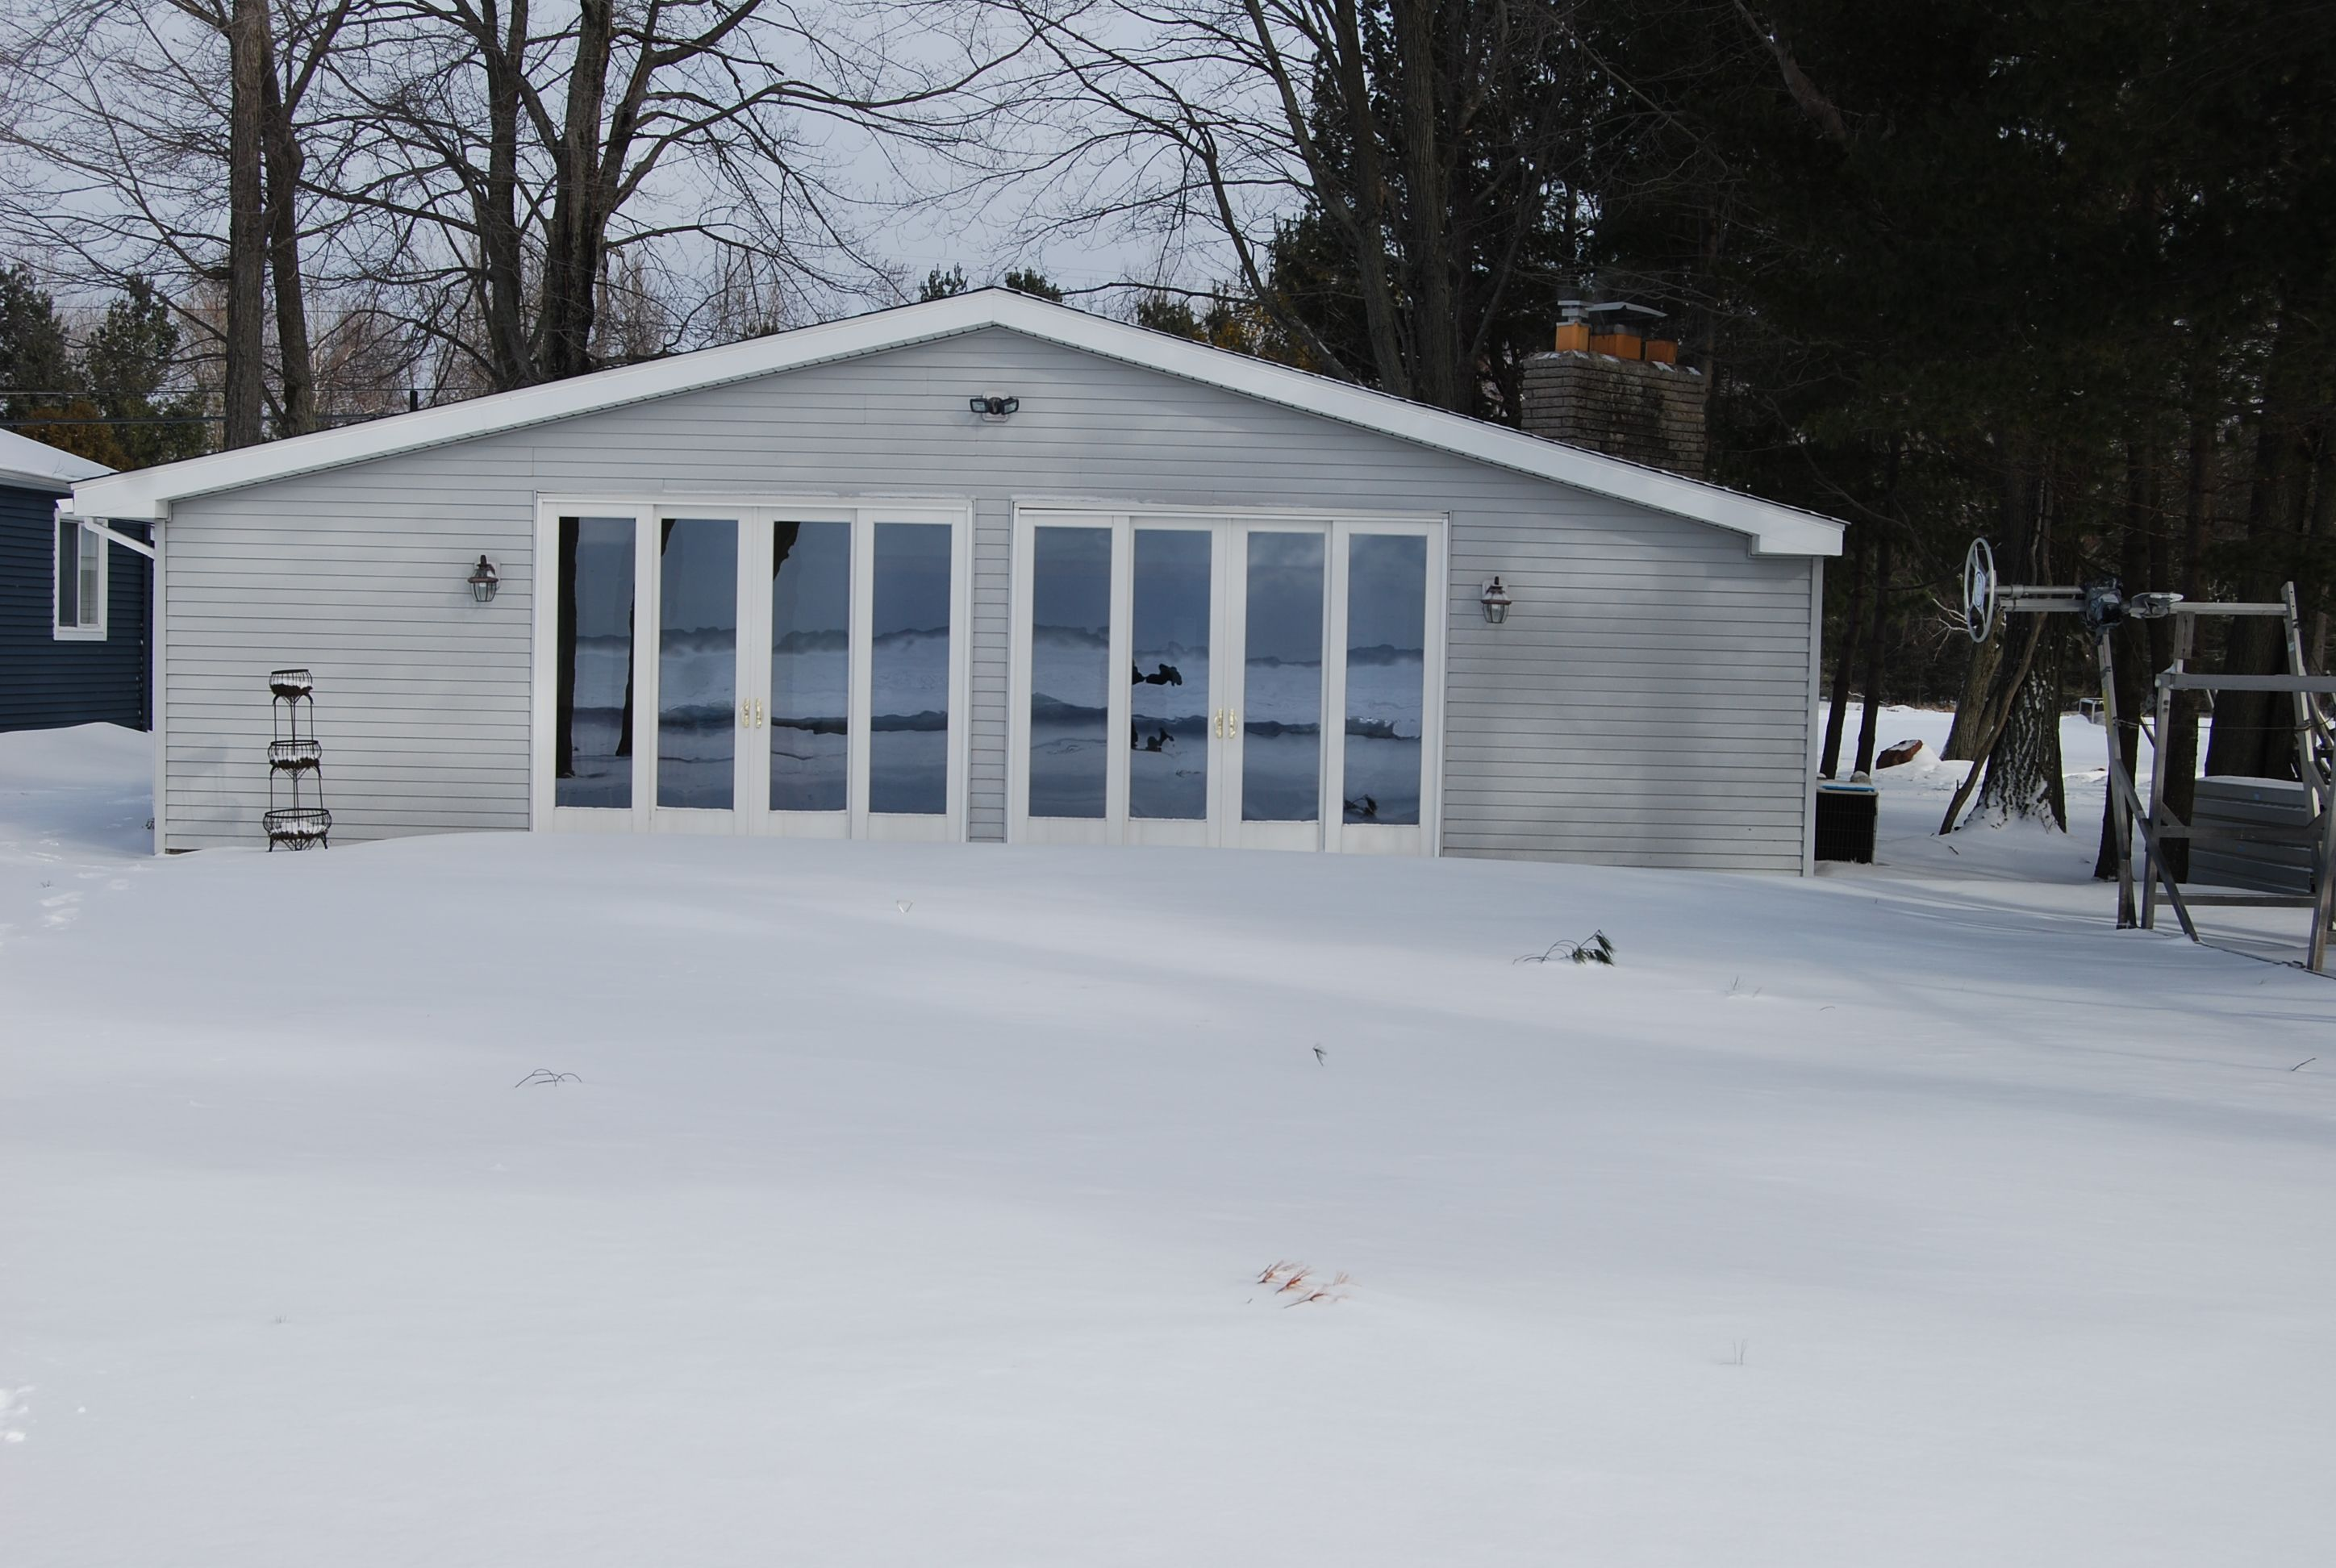 michele lake find lakefront rentals cabin cabins rental townline cottage houghton vacation harrison